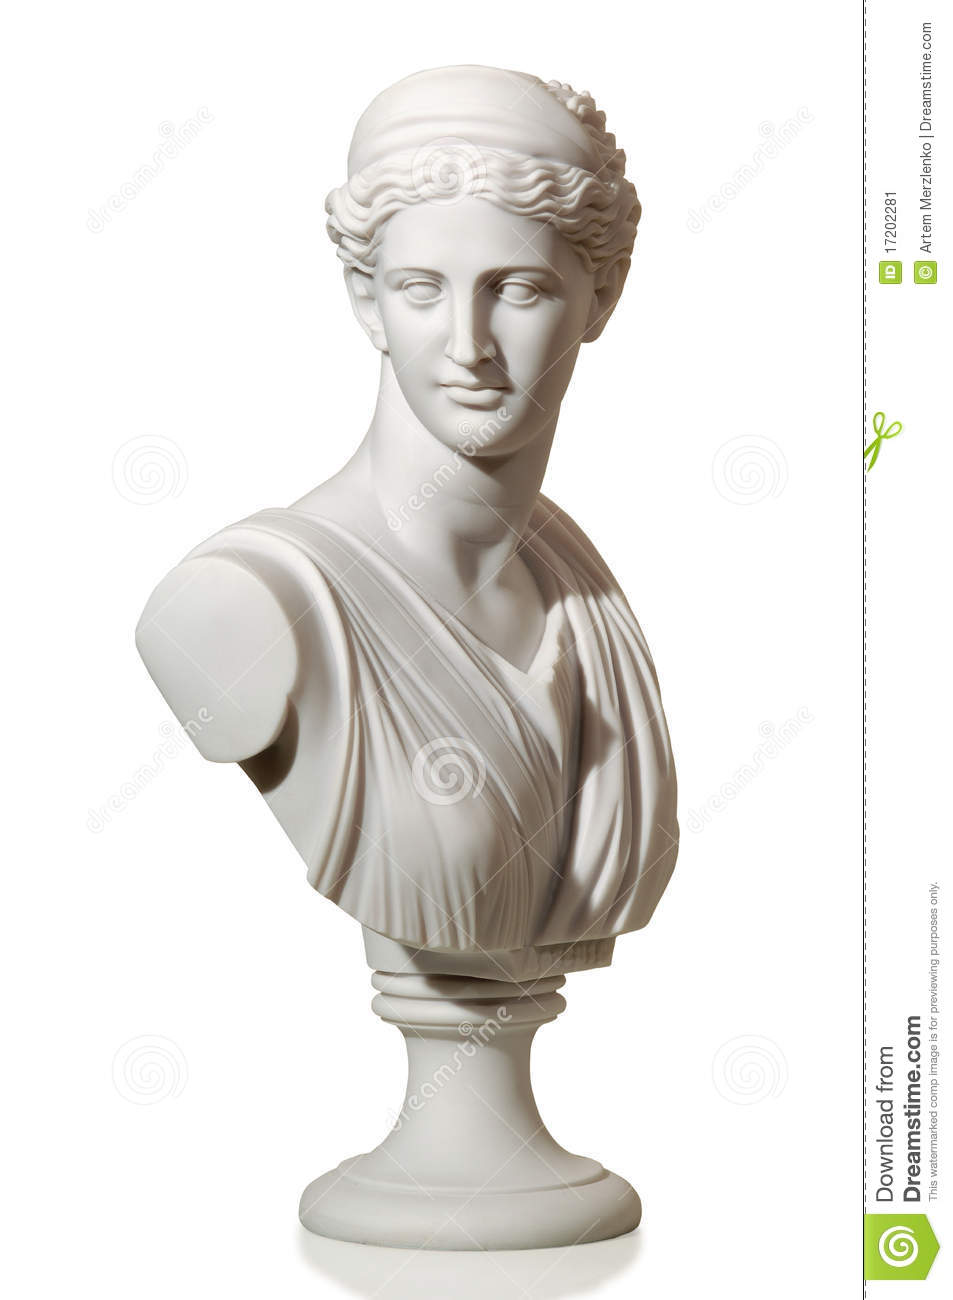 Marble Statue Of A Man Stock Image Image 17202281